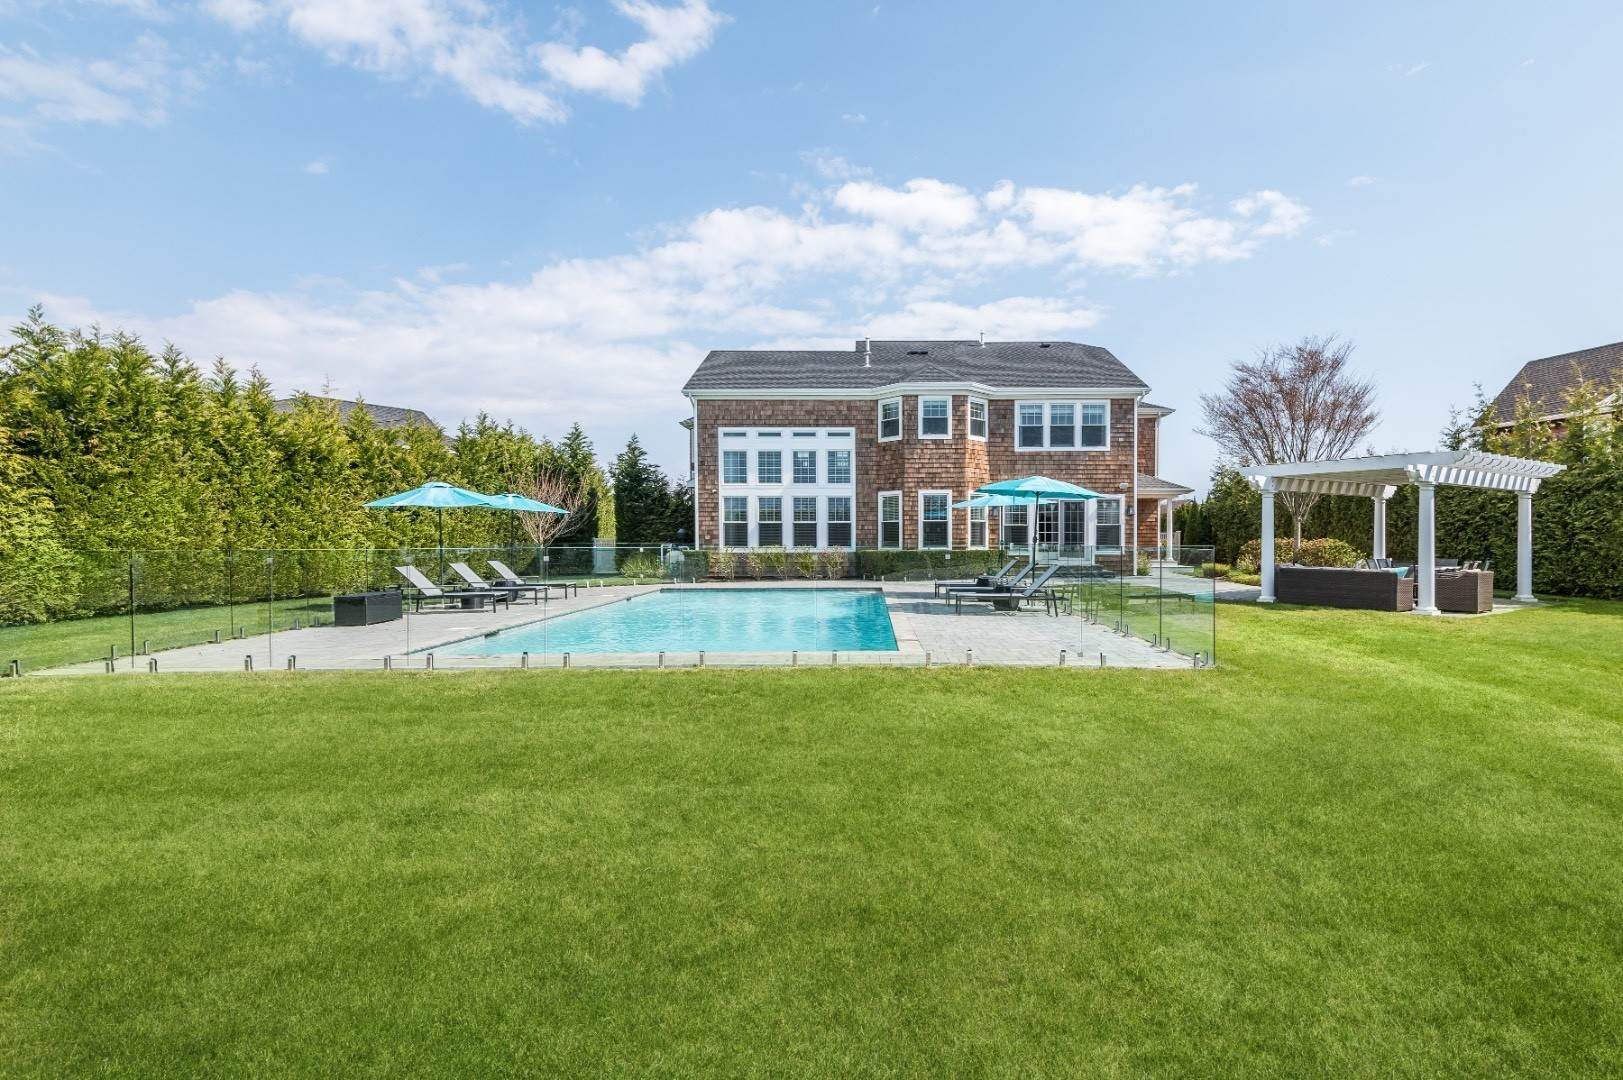 Single Family Home for Sale at Sophisticated Southampton Traditional 6 Spring Lane, Southampton, NY 11968